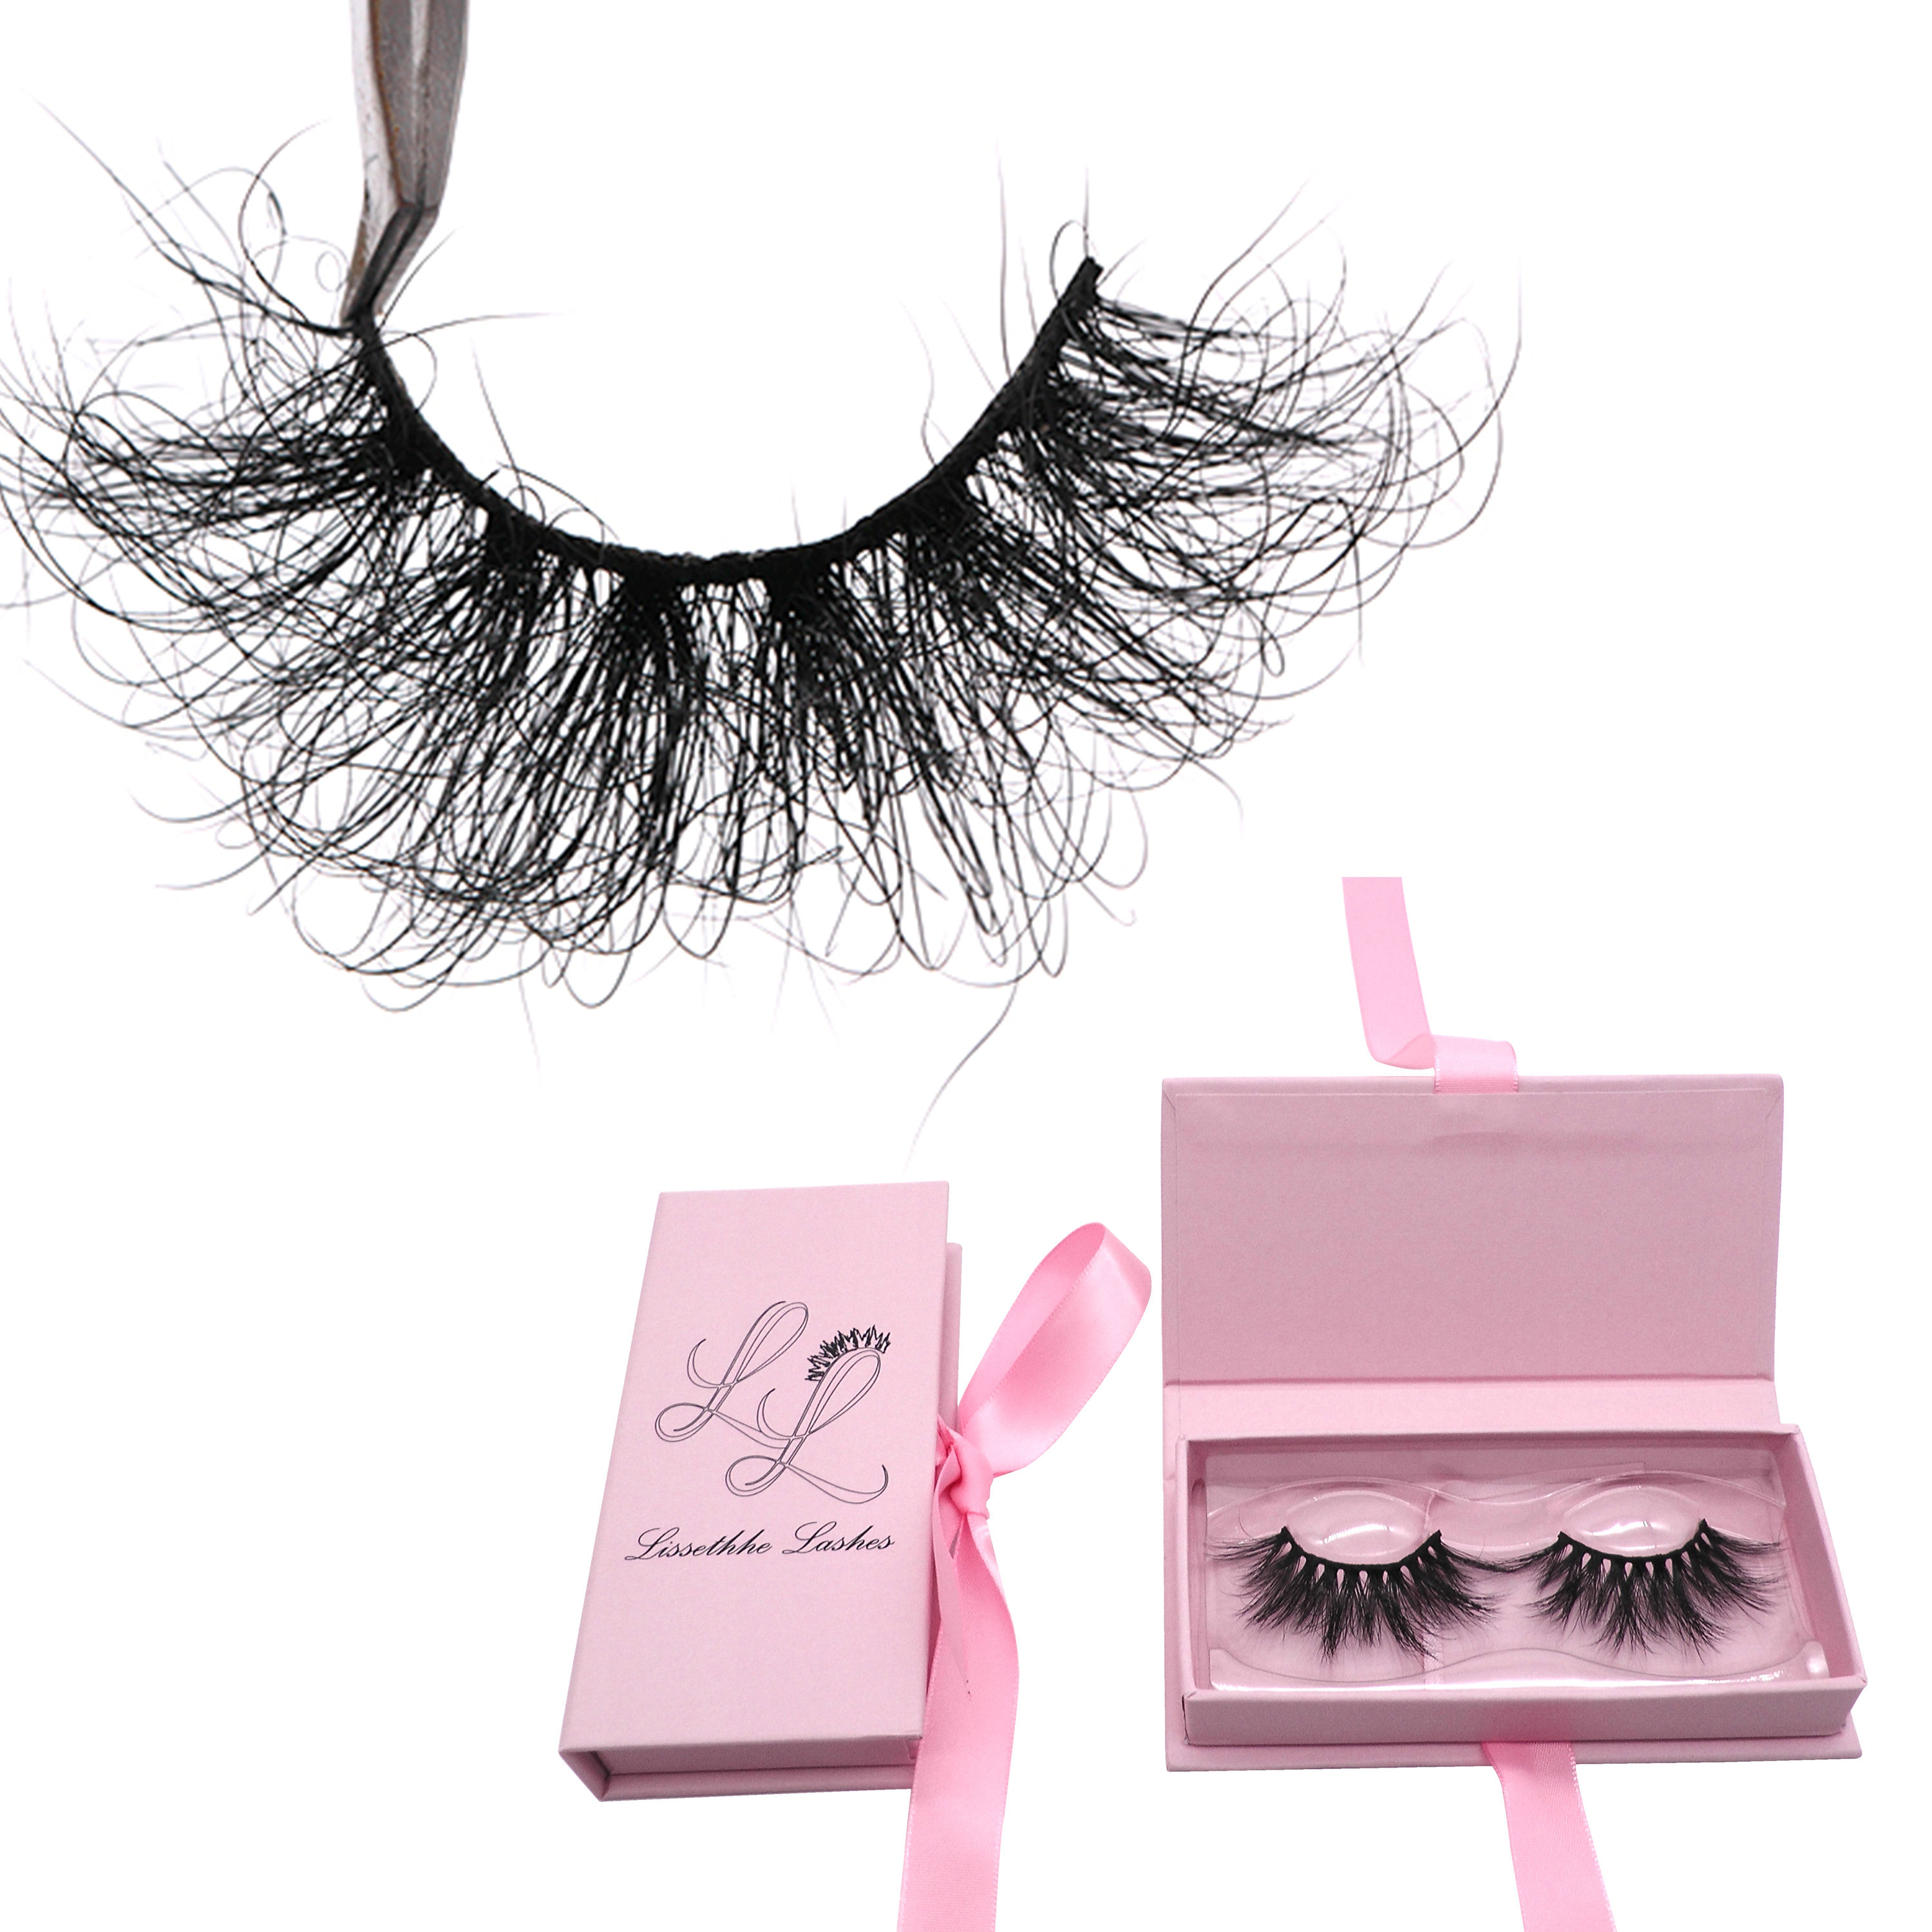 HZ6CF Hitomi Hand Made 3d Mink Strip Eyelashes 3d Mink Lashes Wholesale Real Fluffy Curl 25mm 3D Mink Eyelashes